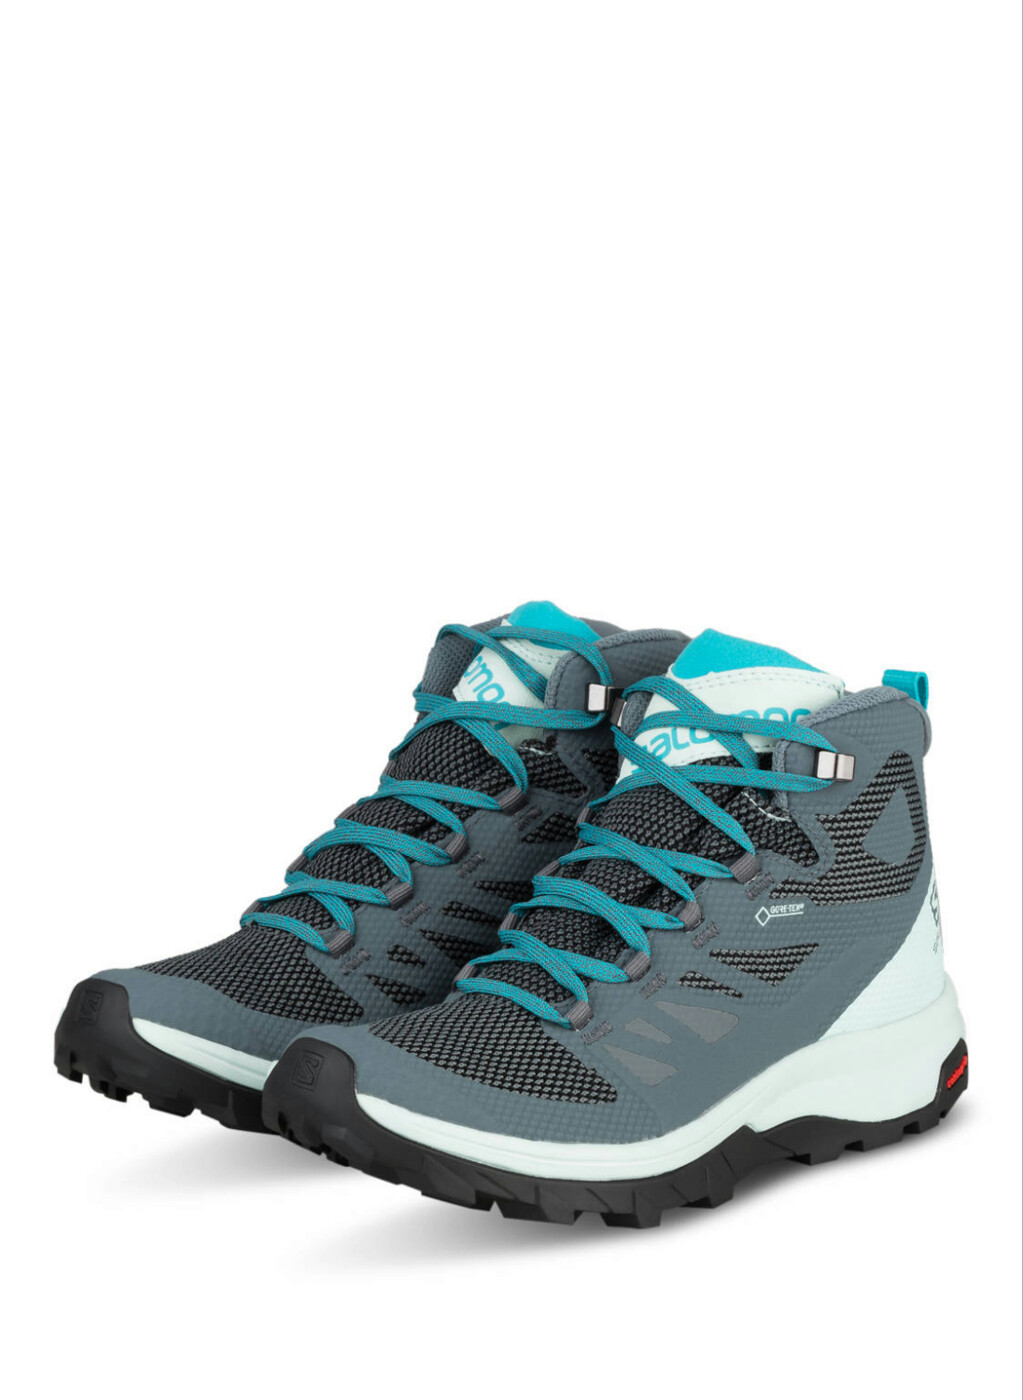 MOON BOOT SHOES OUTline Mid GTX W Stormy Wea/Icy M Salomon - Damen